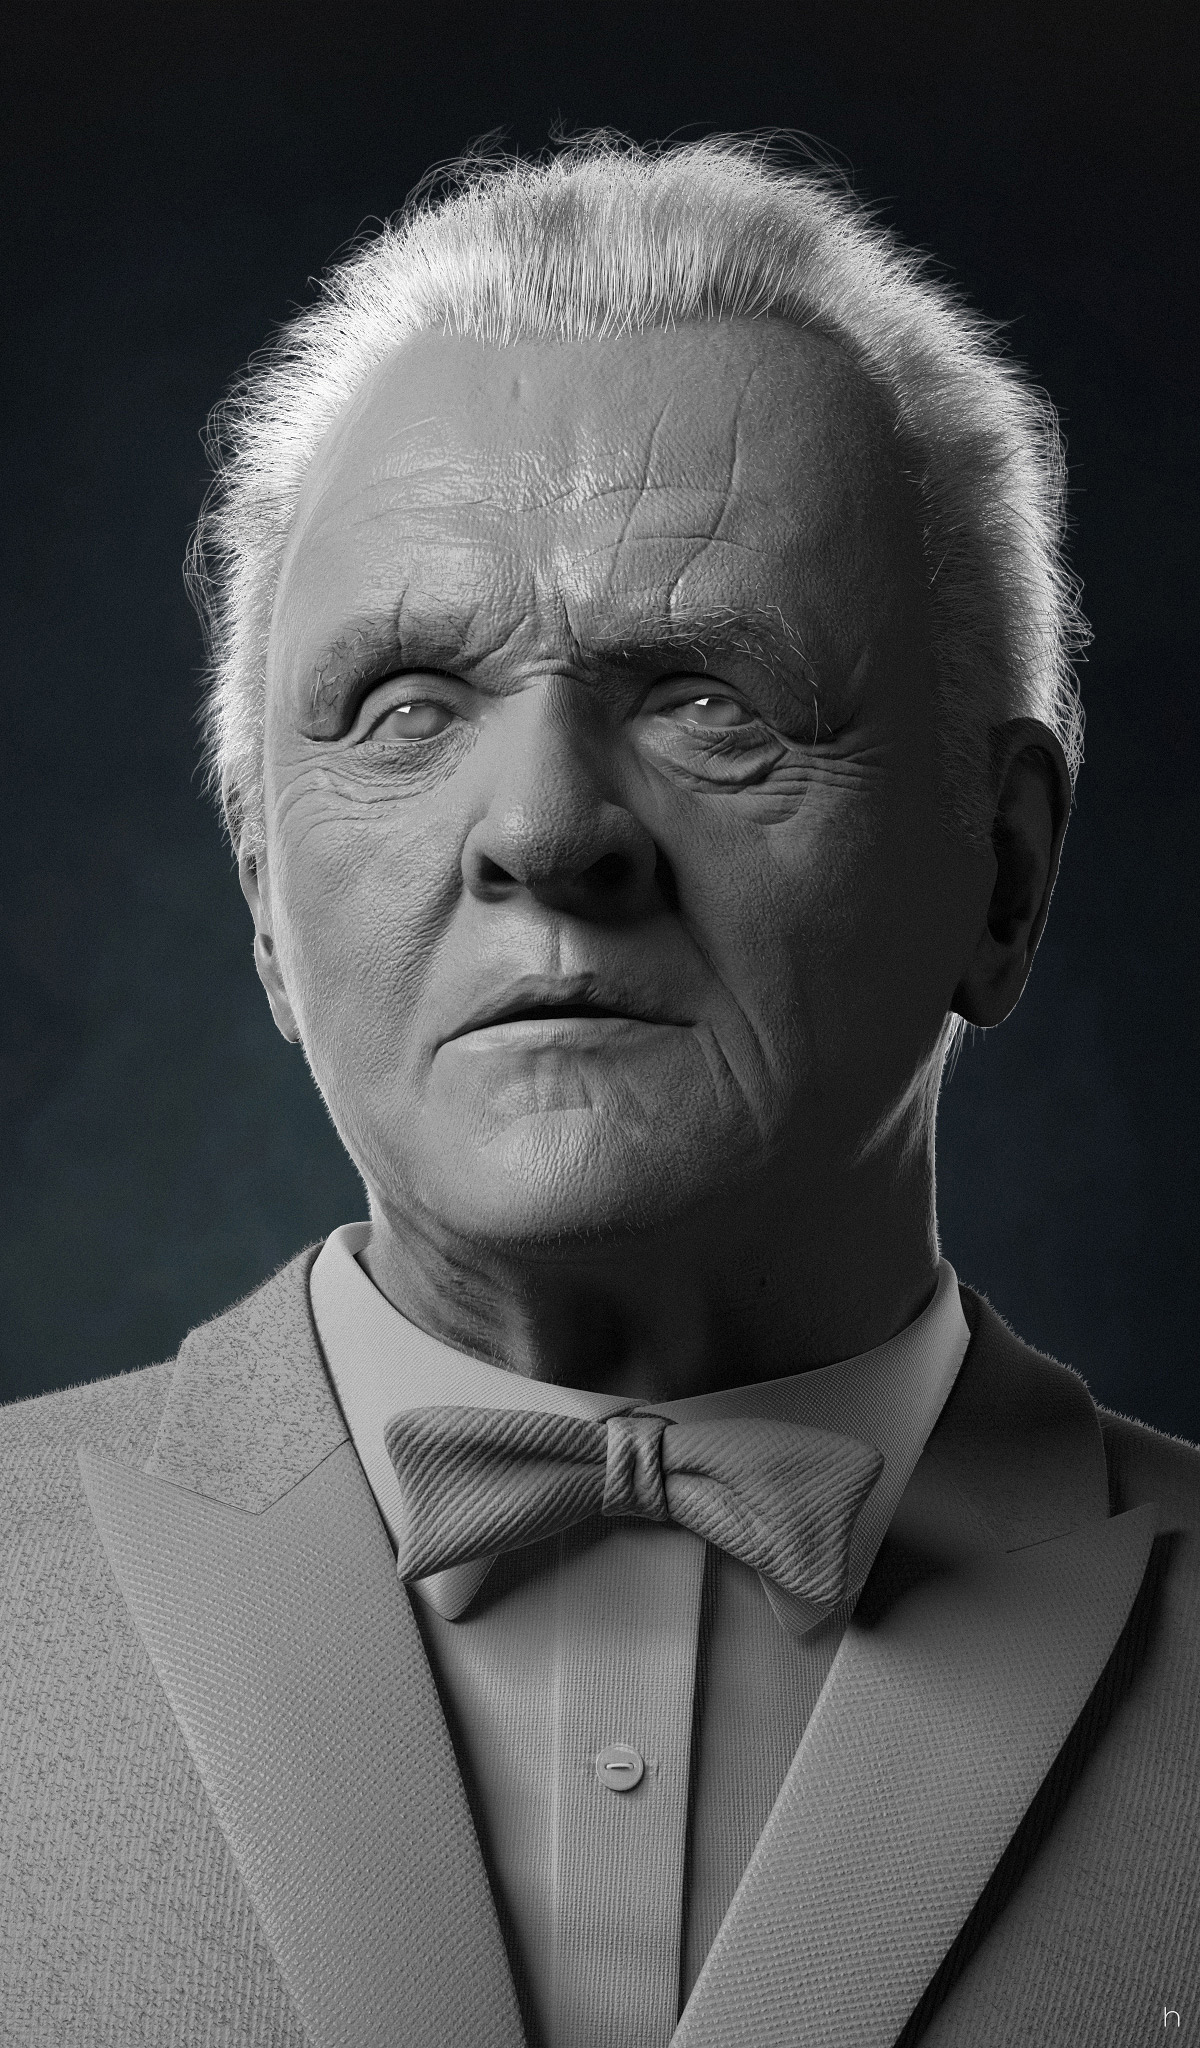 anthony_hopkins_by_hossimo_front_model.jpg